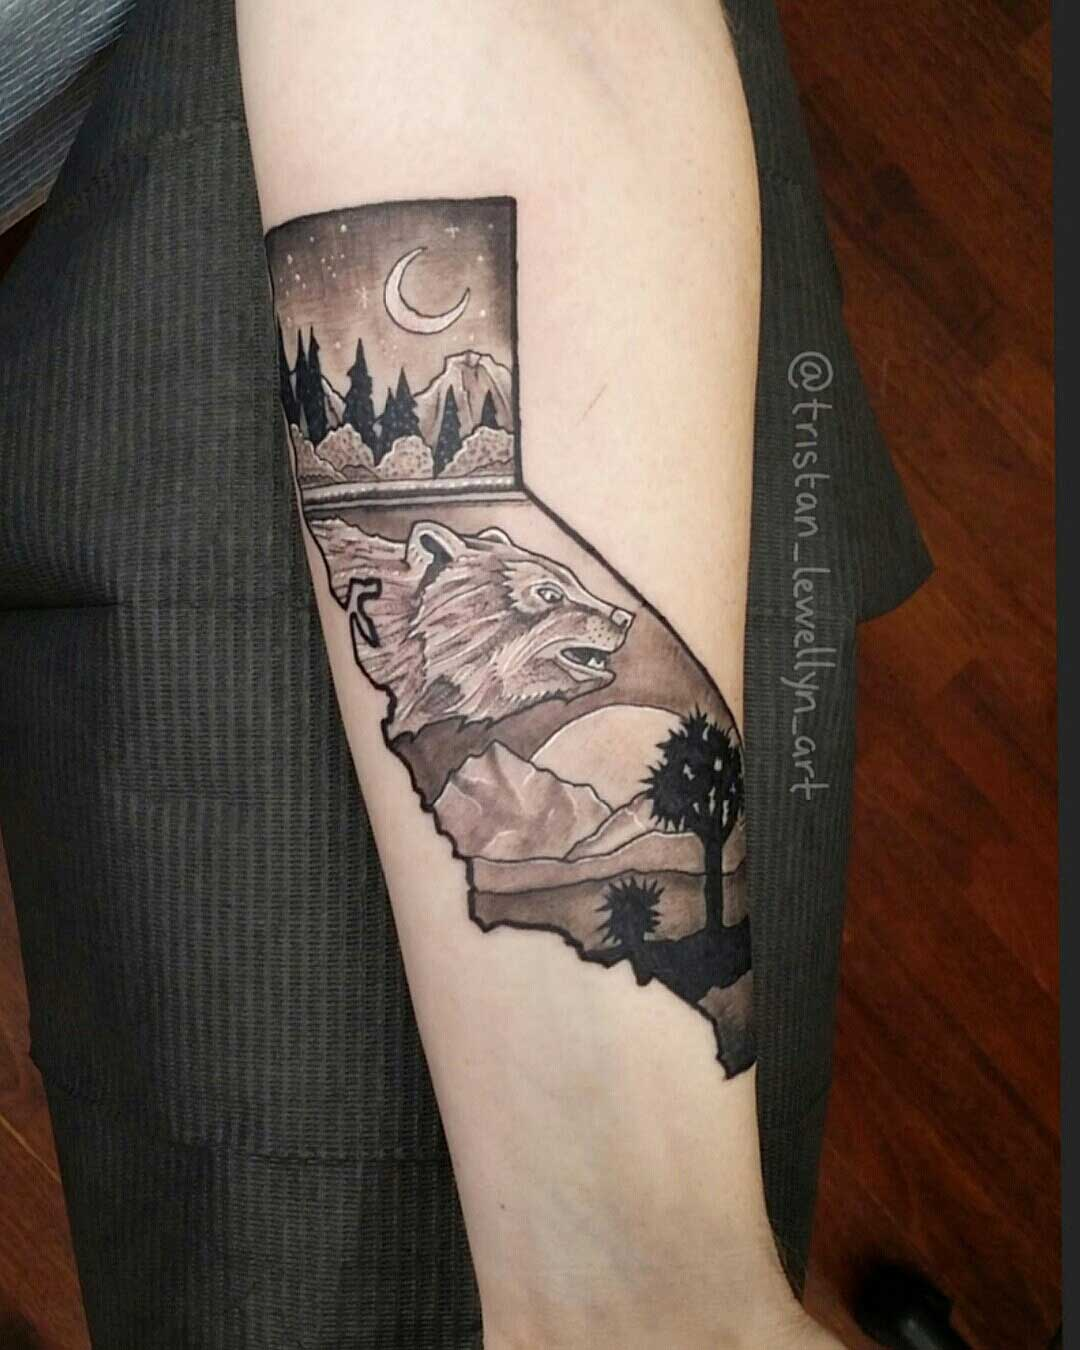 california-tattoo-in-blackwork-style-with-landscape